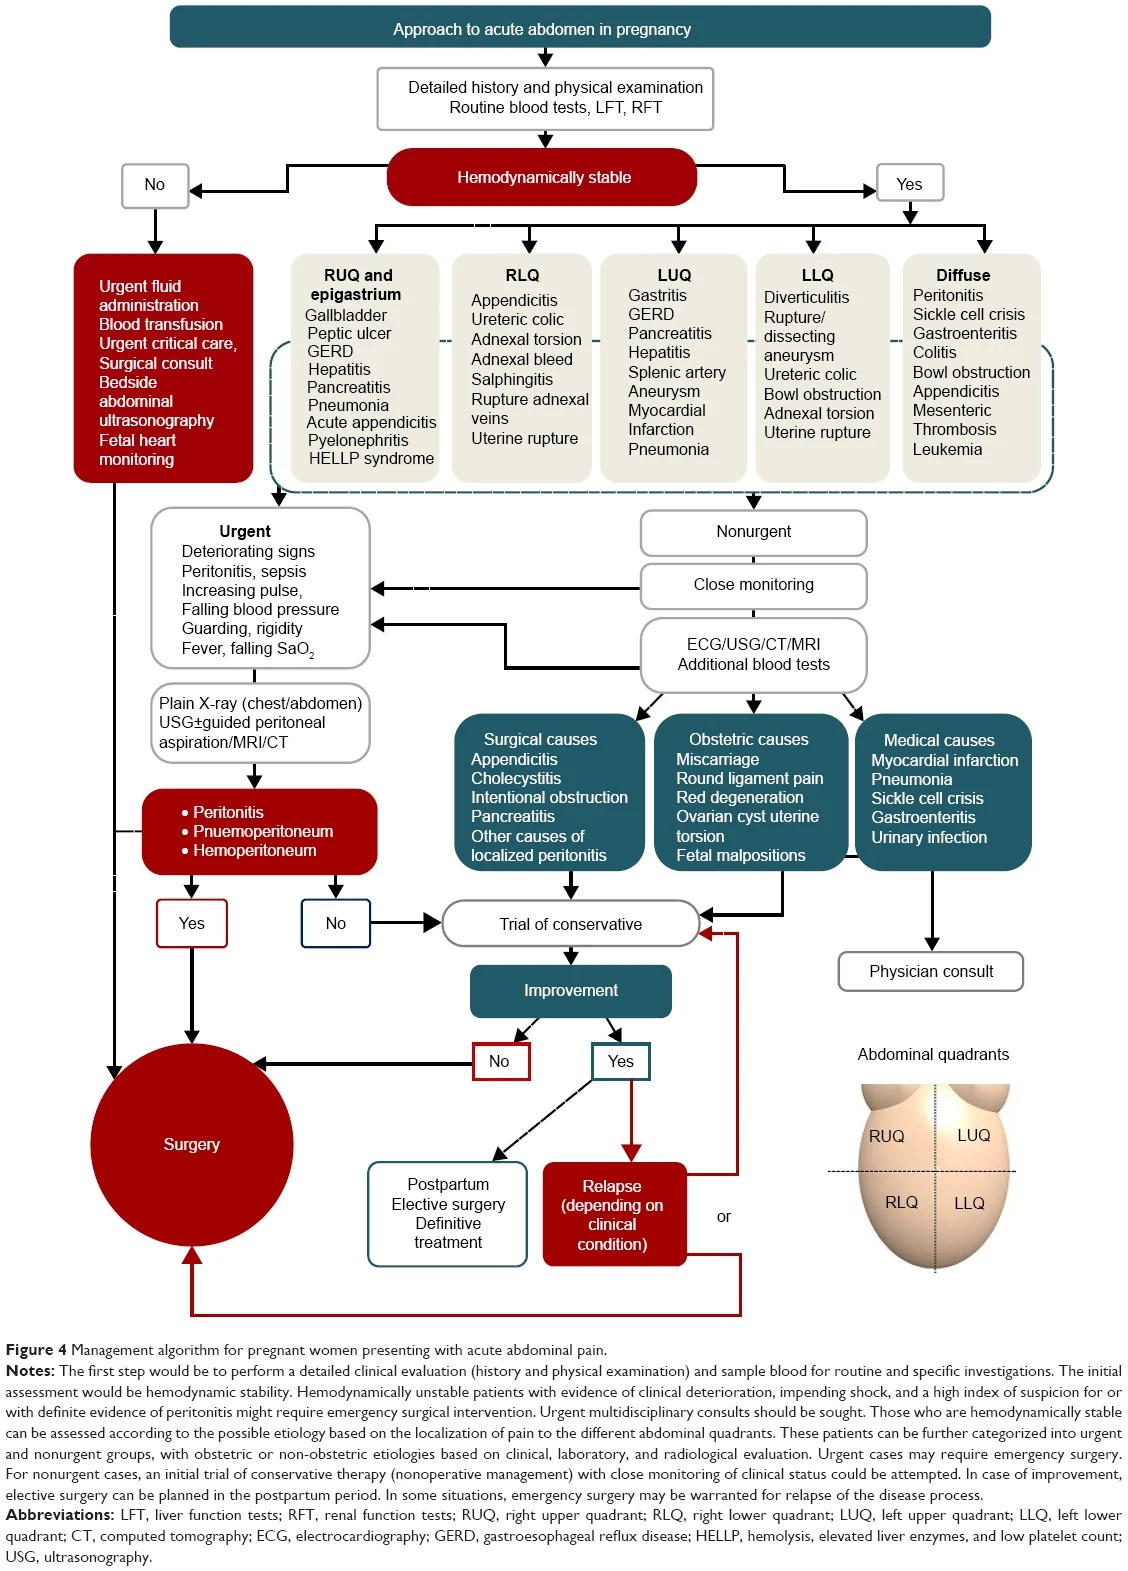 hight resolution of figure 4 management algorithm for pregnant women presenting with acute abdominal pain notes the first step would be to perform a detailed clinical